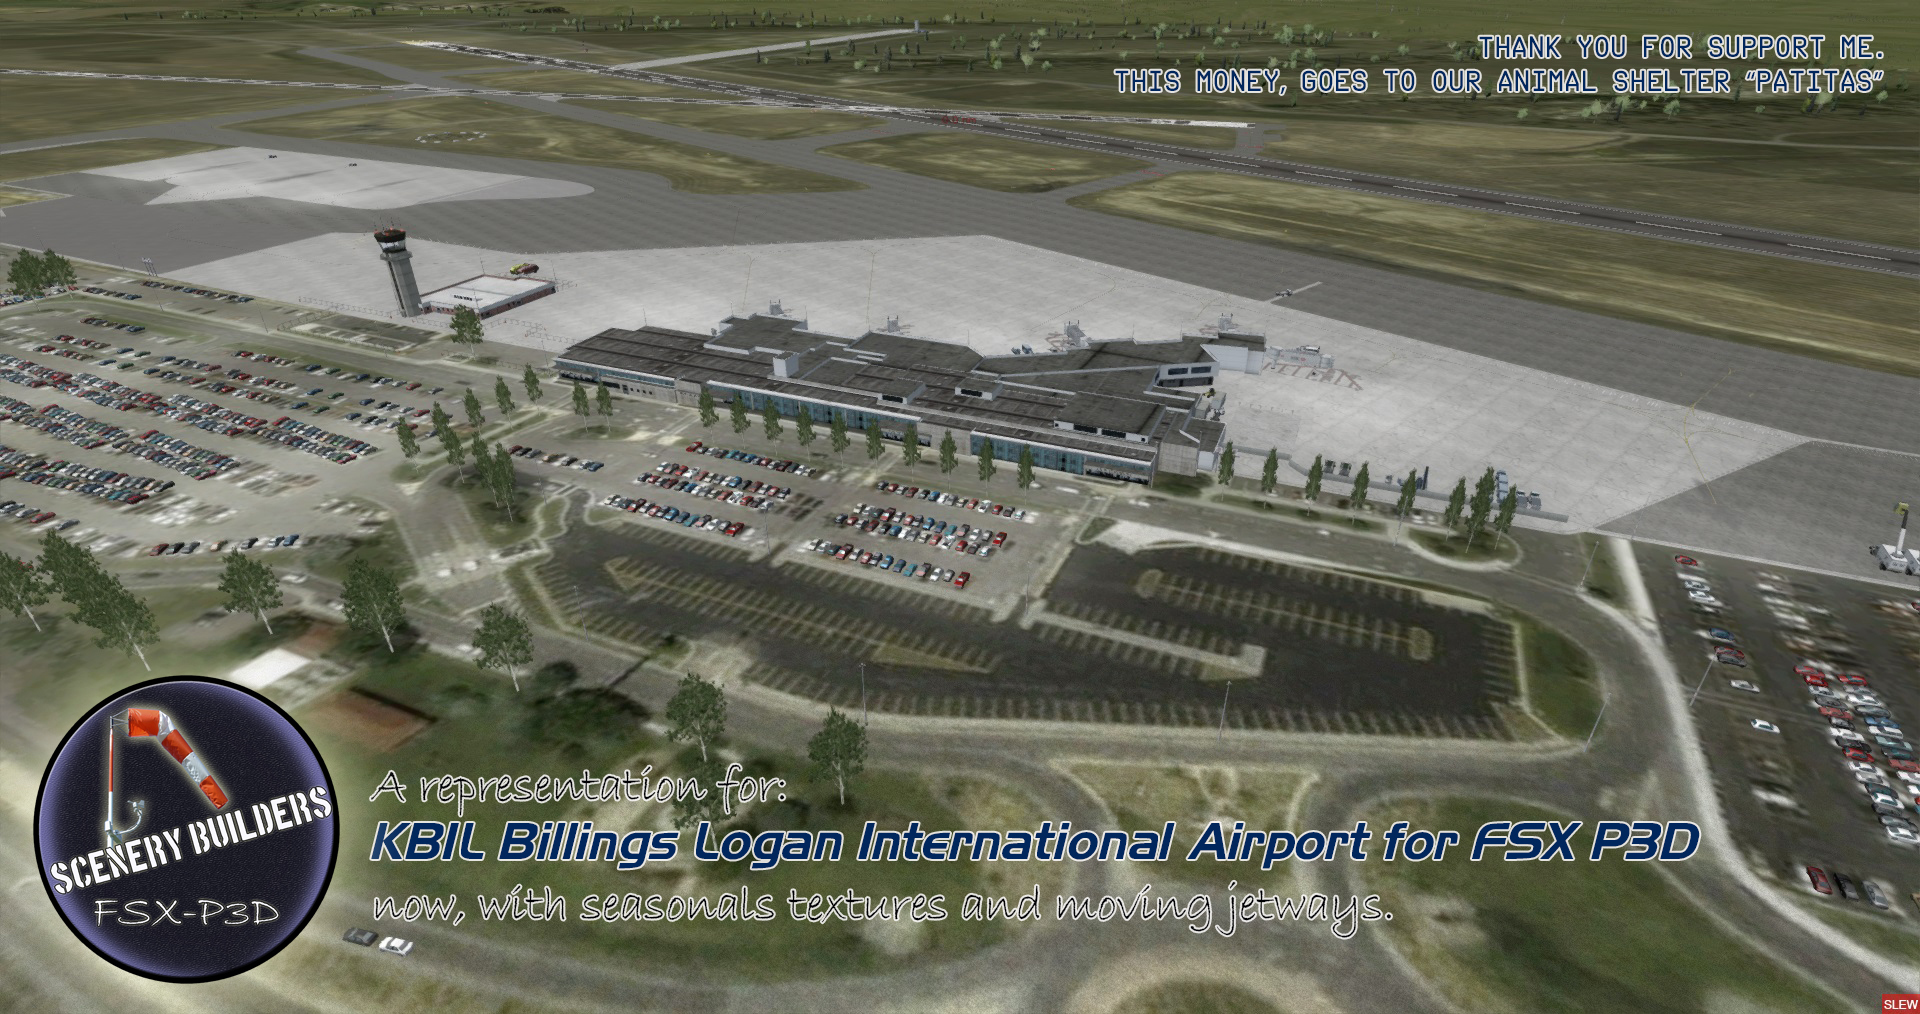 Scenery Builders - Billings Logan International Airport (KBIL) ~ Mi